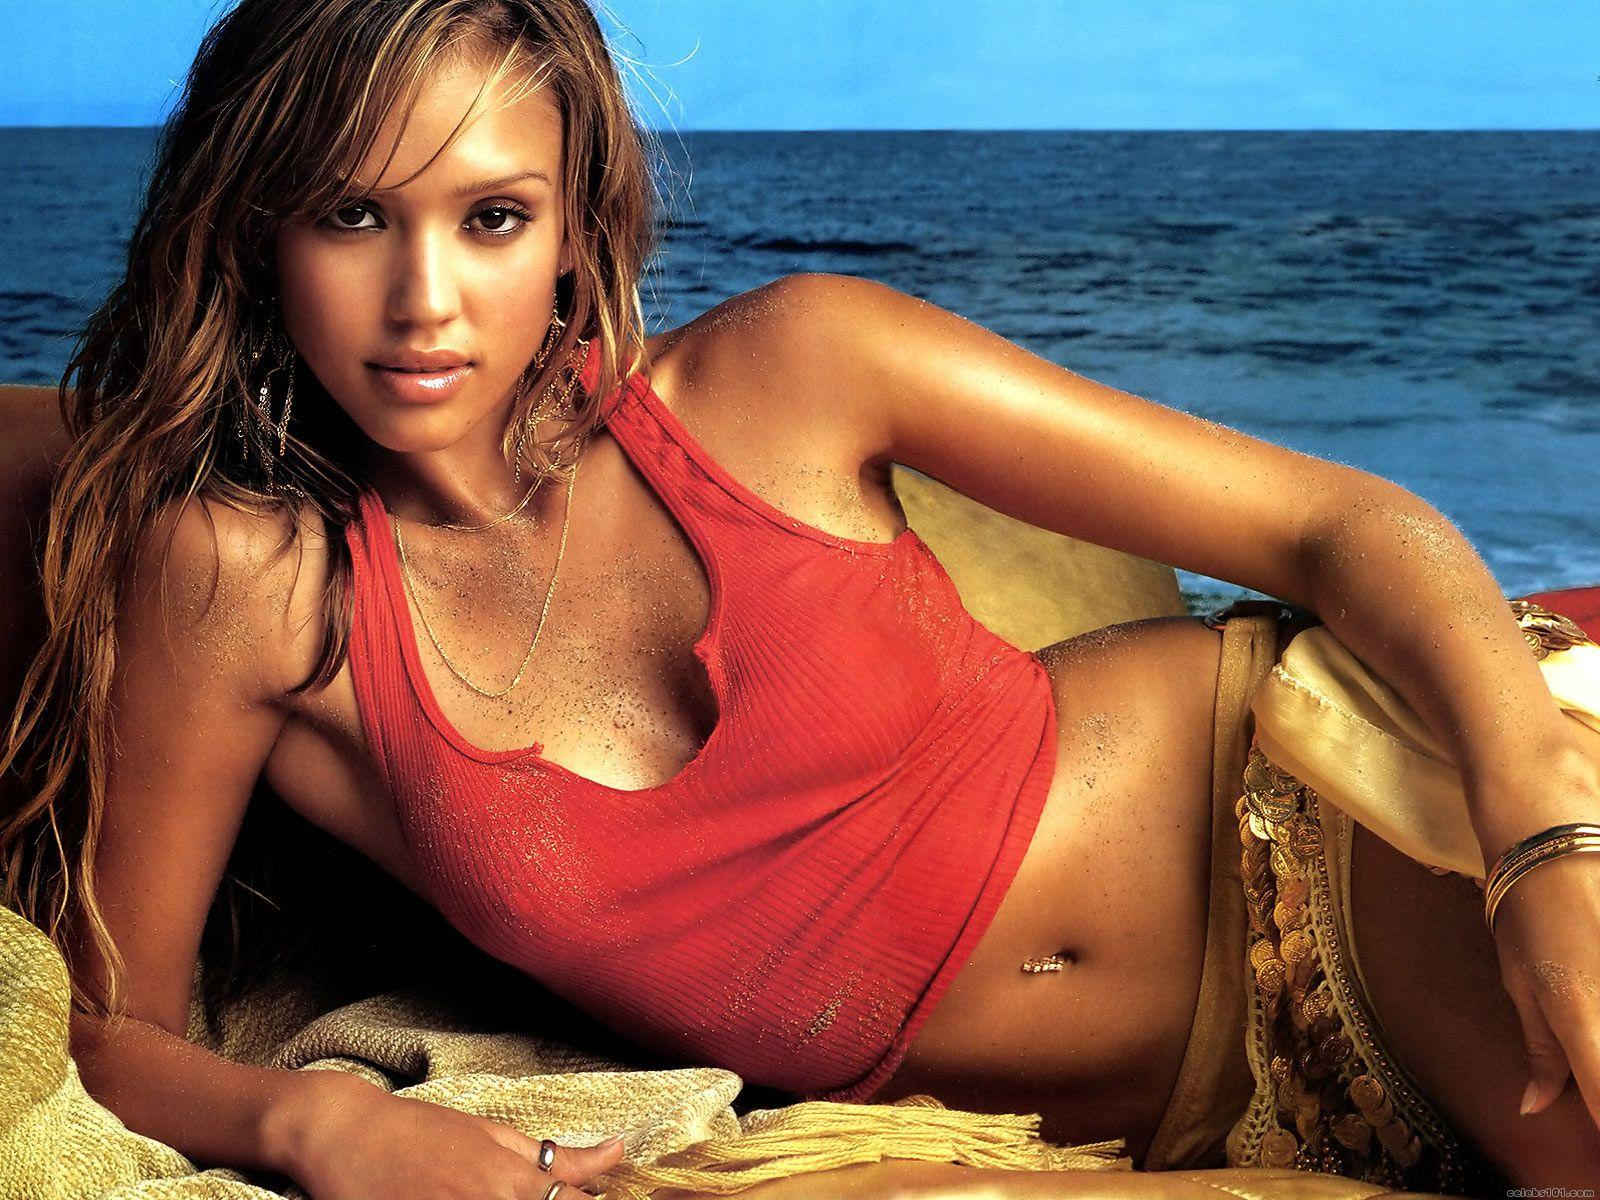 jessica alba wallpaper 35jpg - photo #40